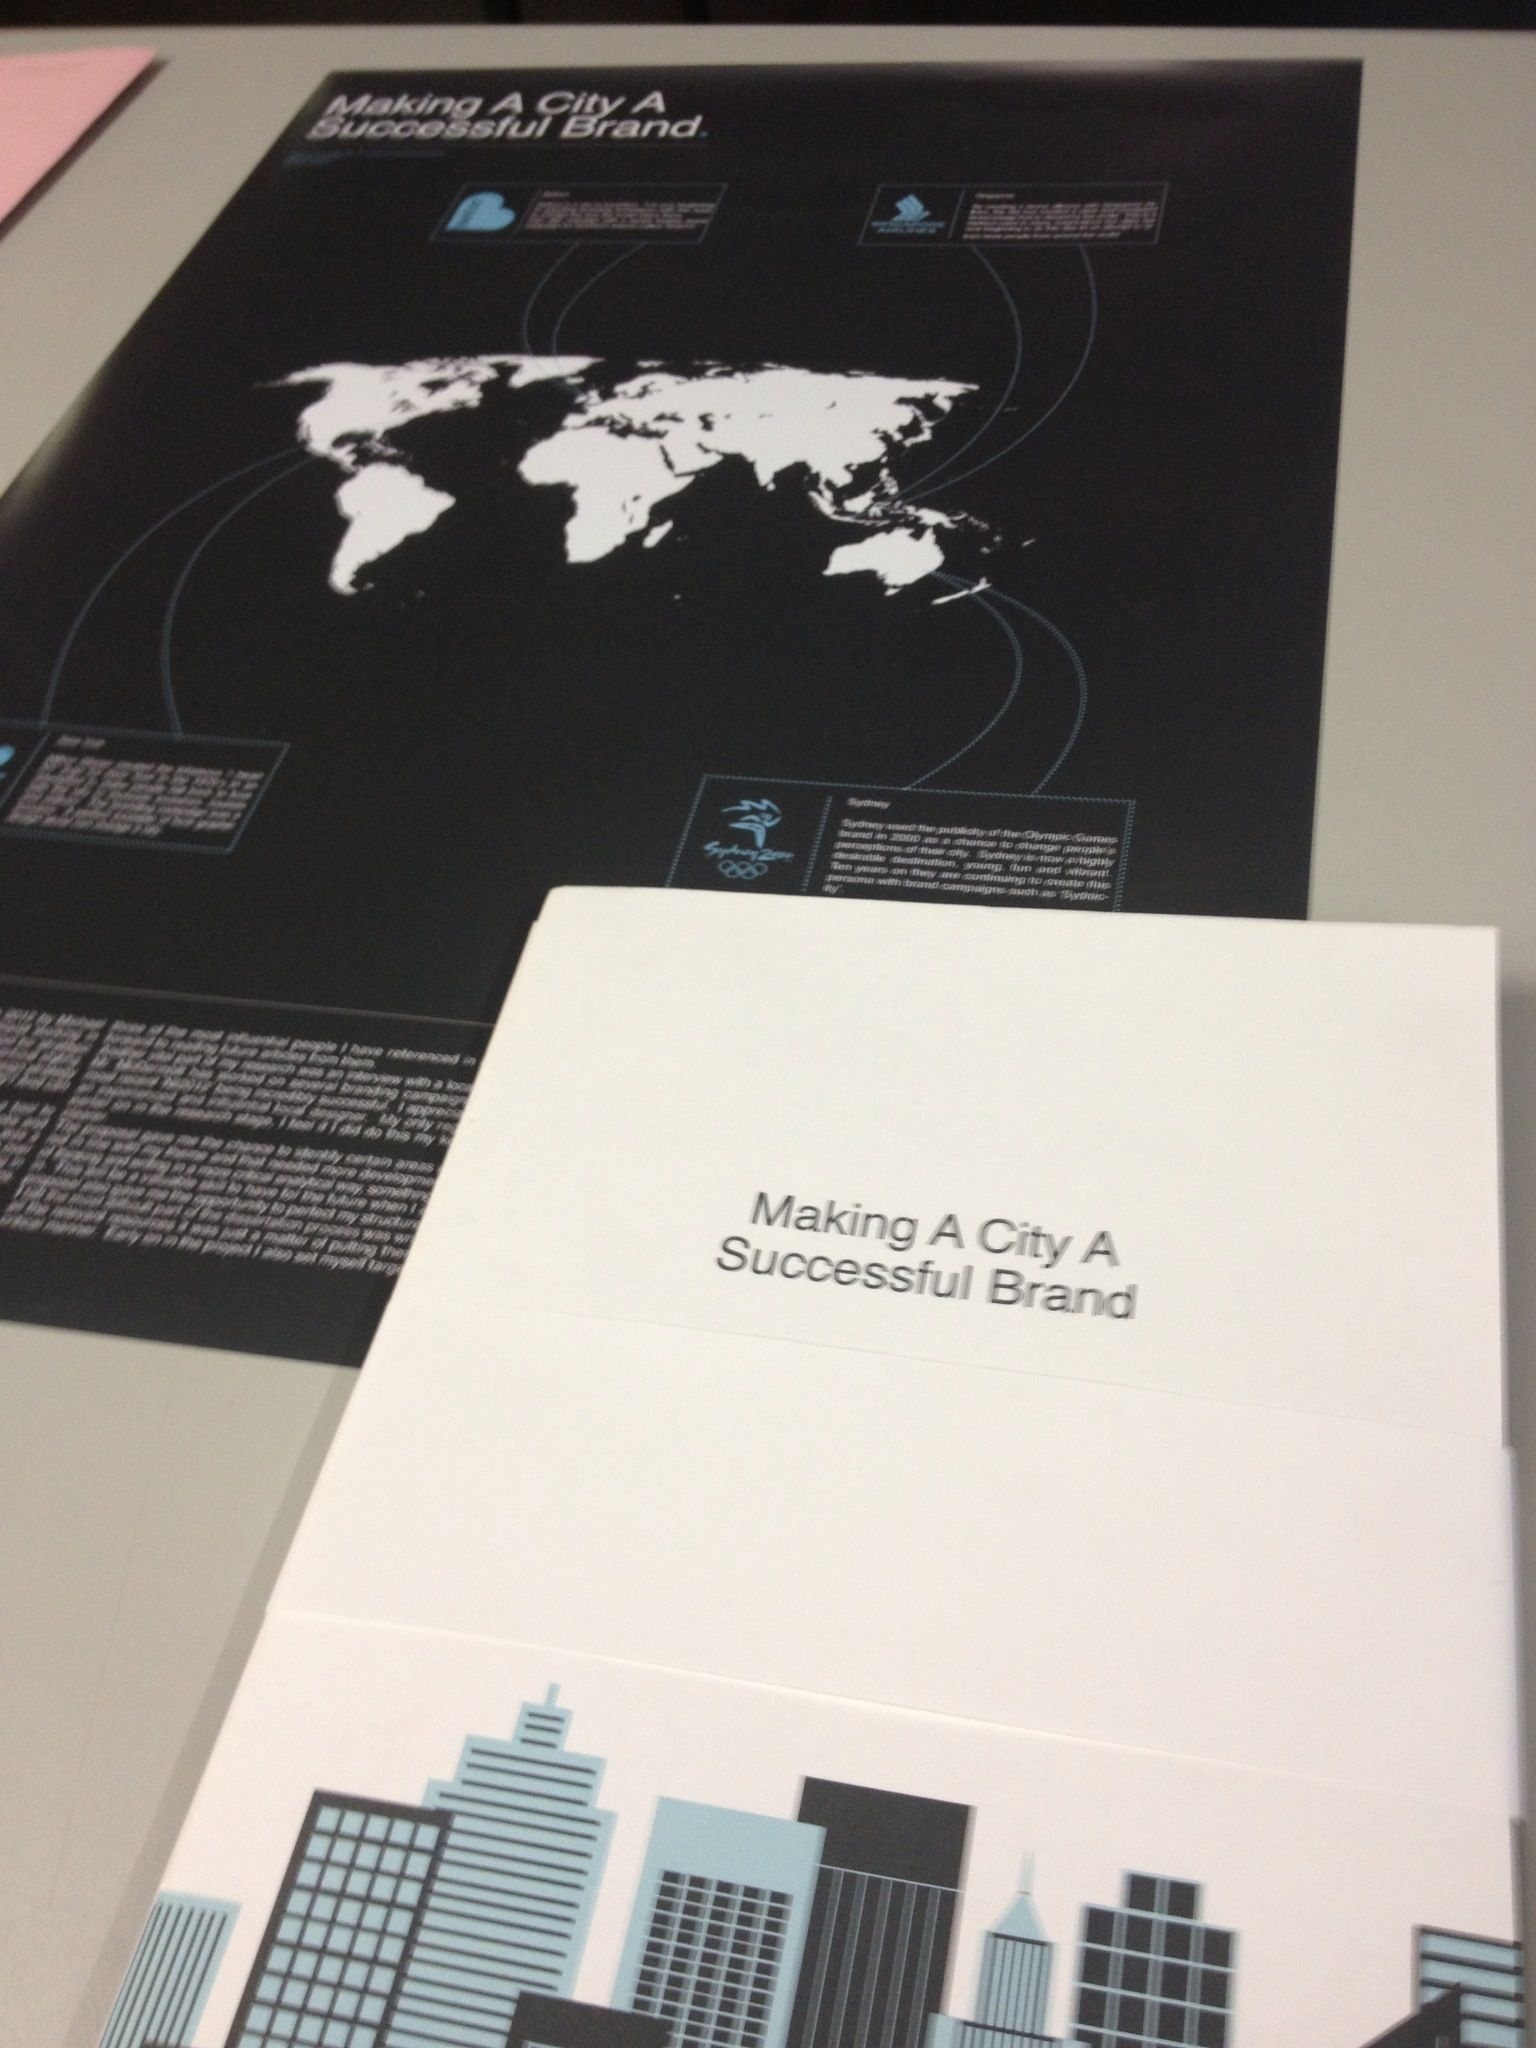 What Make A City Successful Brand My Dissertation Topic How To Me Your Human Geography